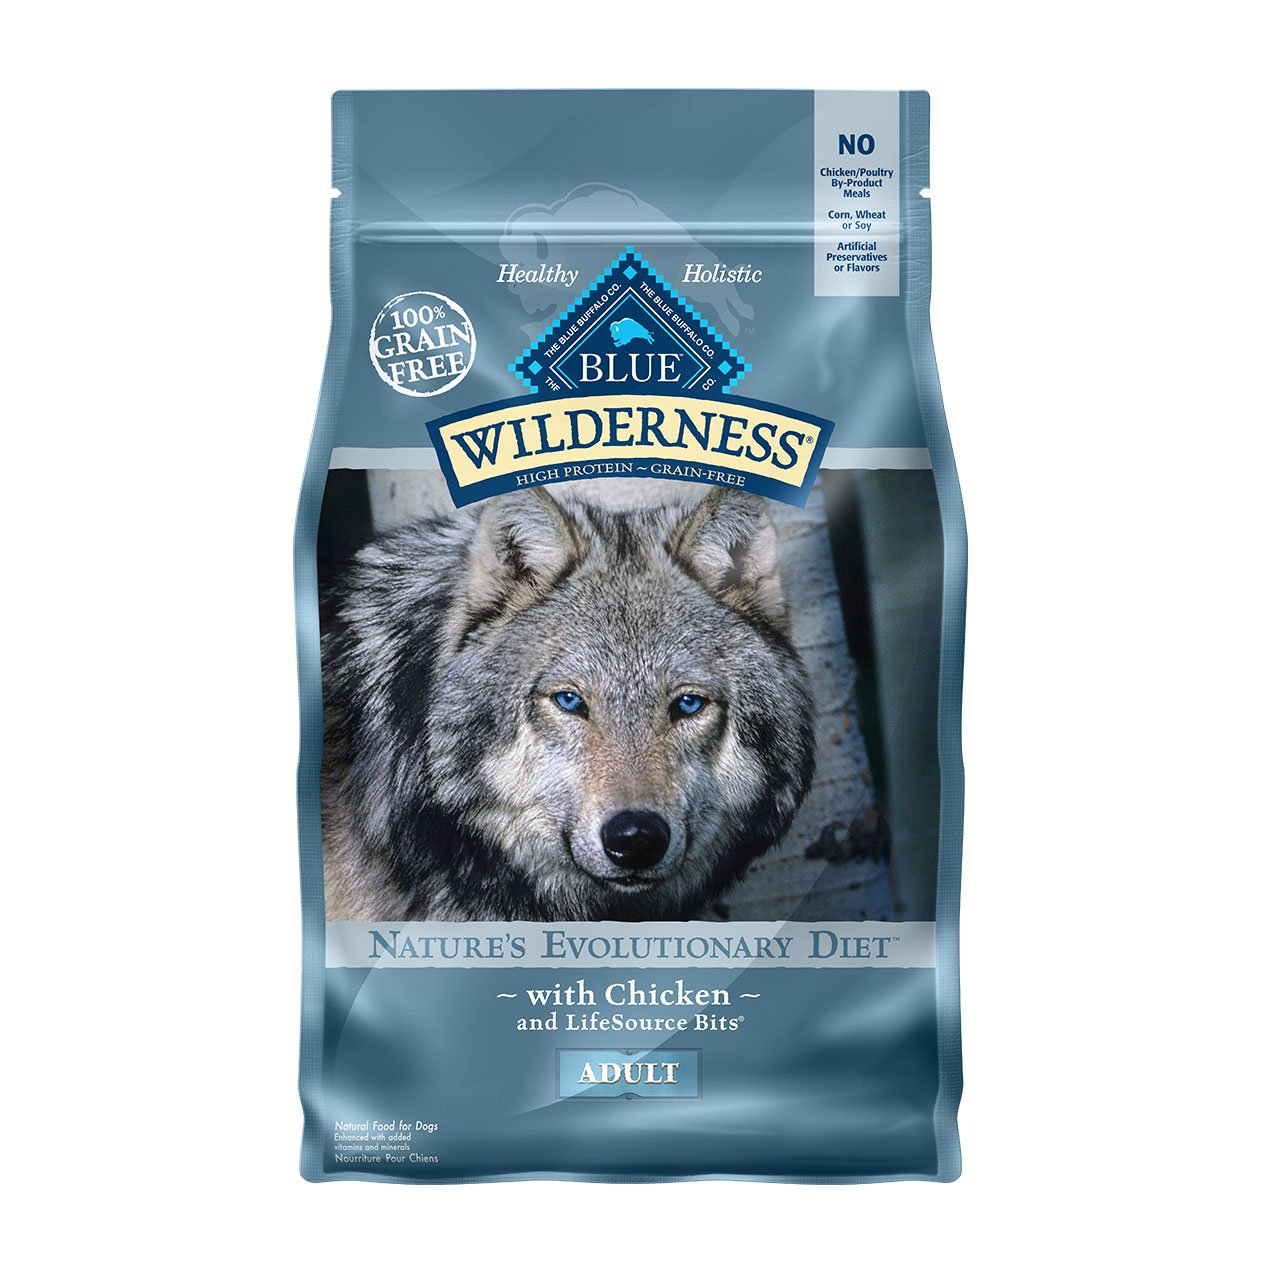 3.Blue Buffalo Wilderness High Protein Grain-Free, Natural Adult Dry Dog Food